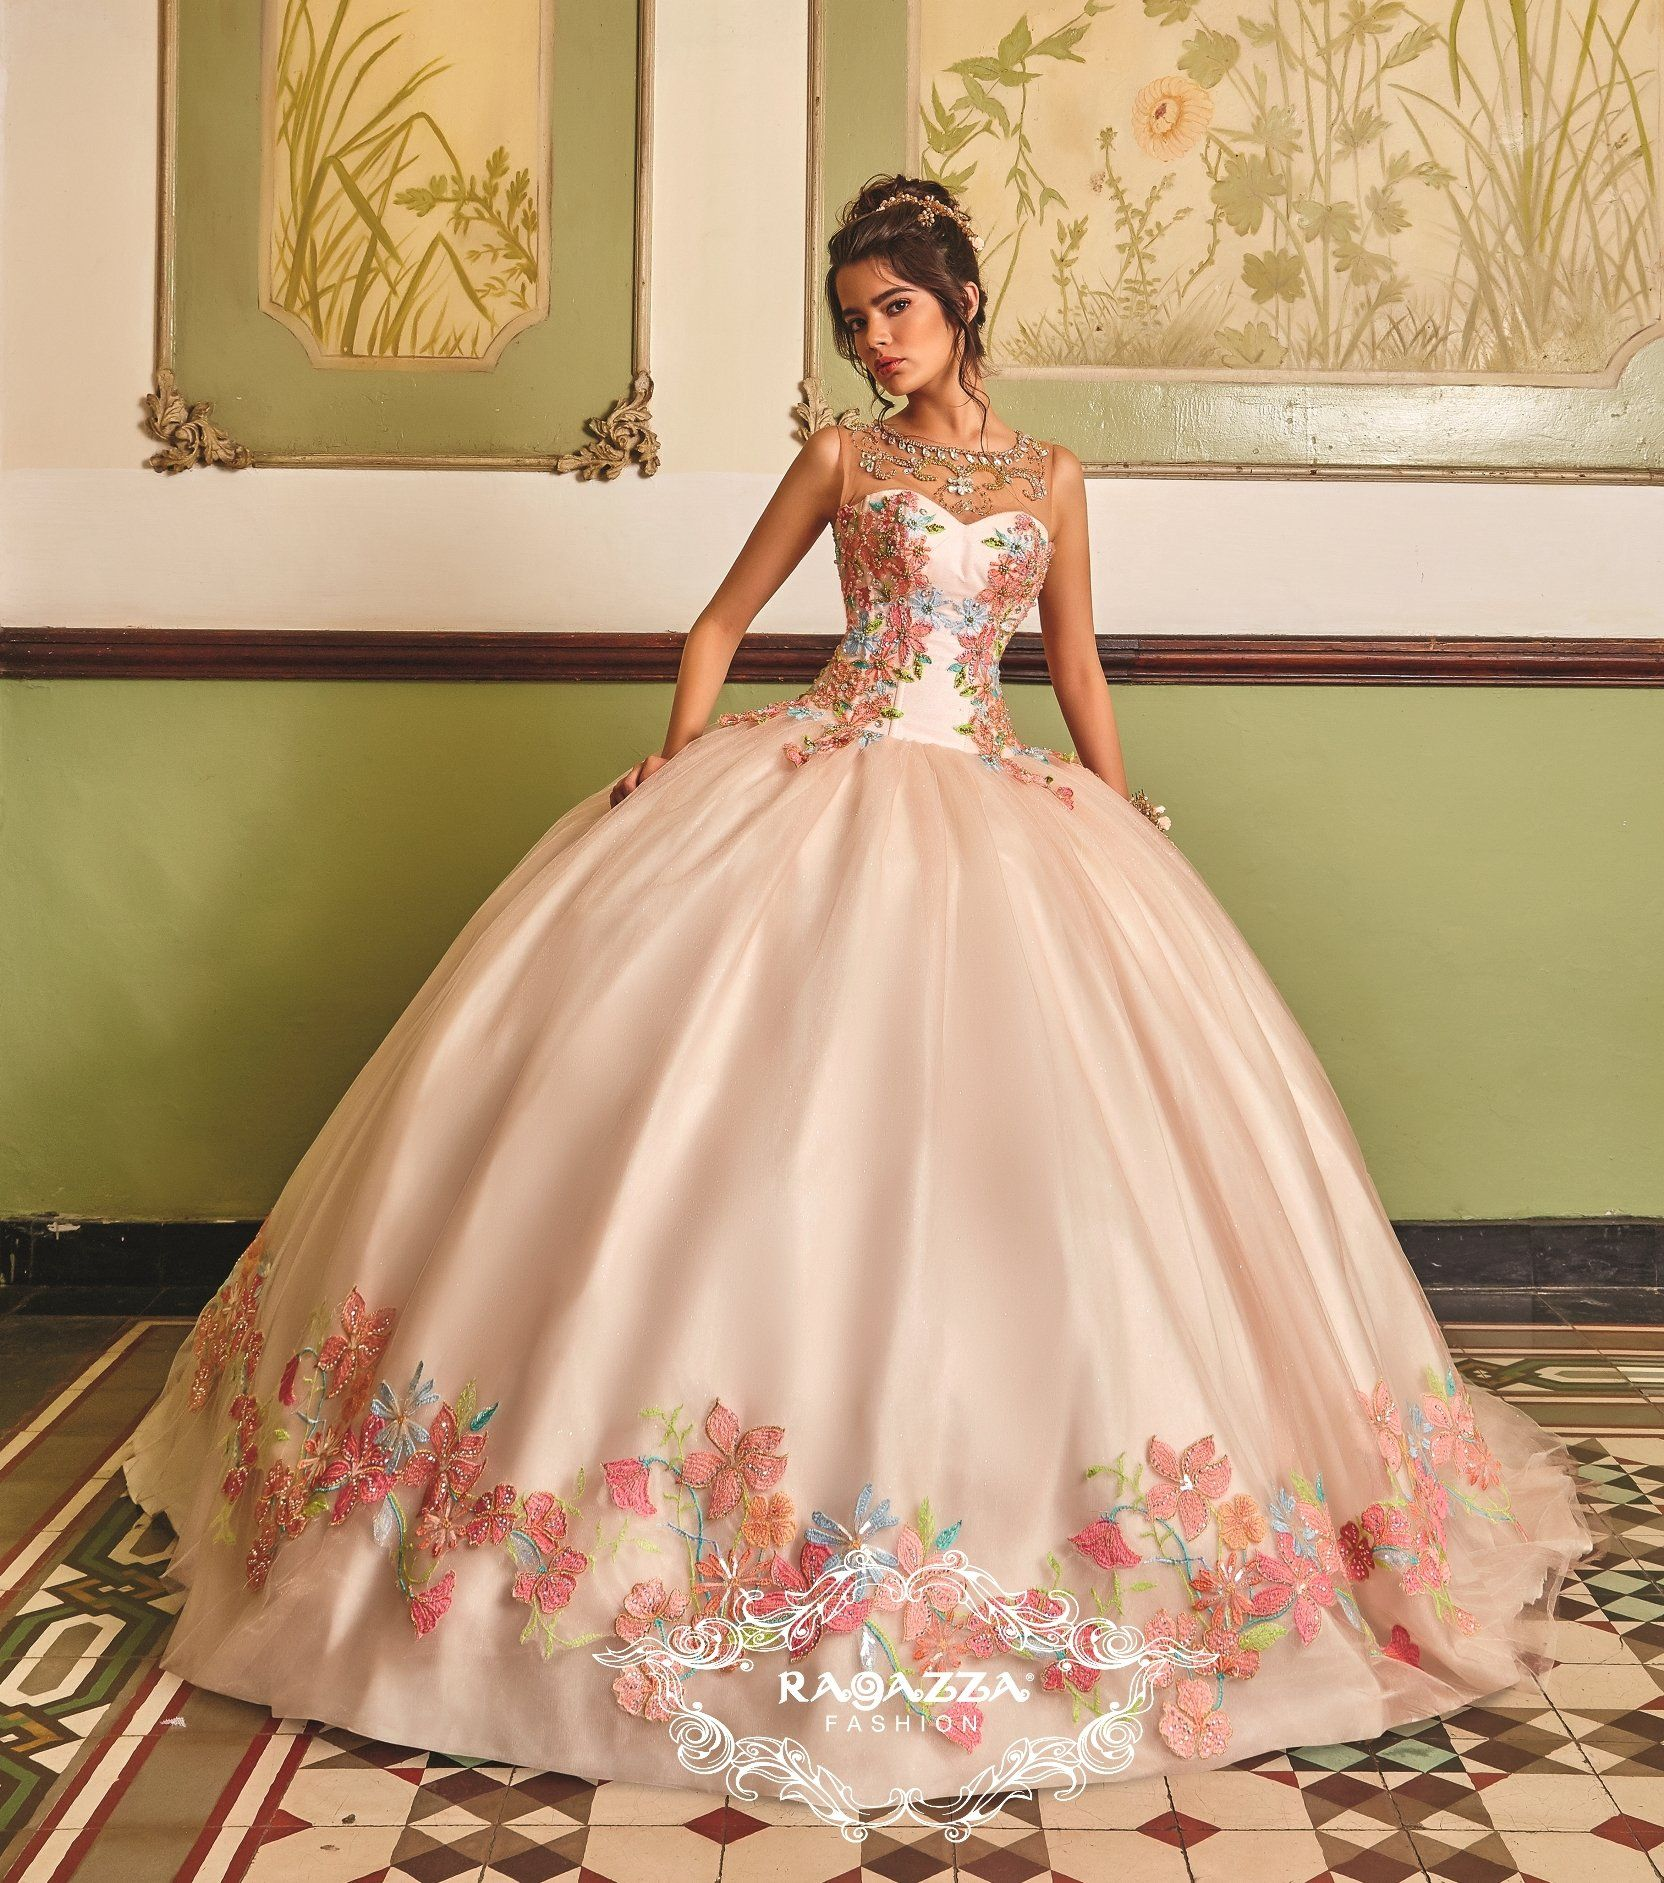 4679f154565 Floral Embroidered Quinceanera Dress by Ragazza Fashion V85-385